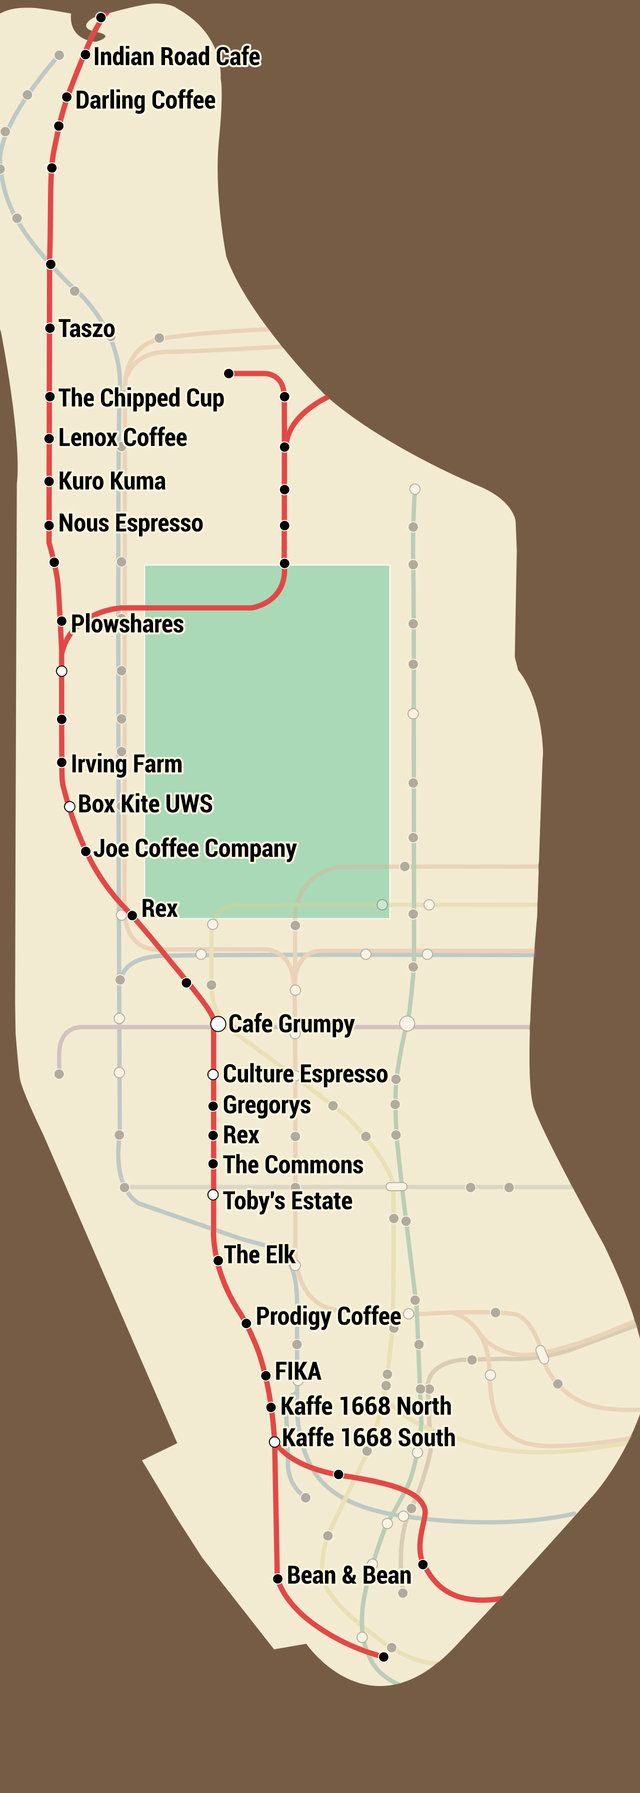 The perfect map for NYC coffee snobs.